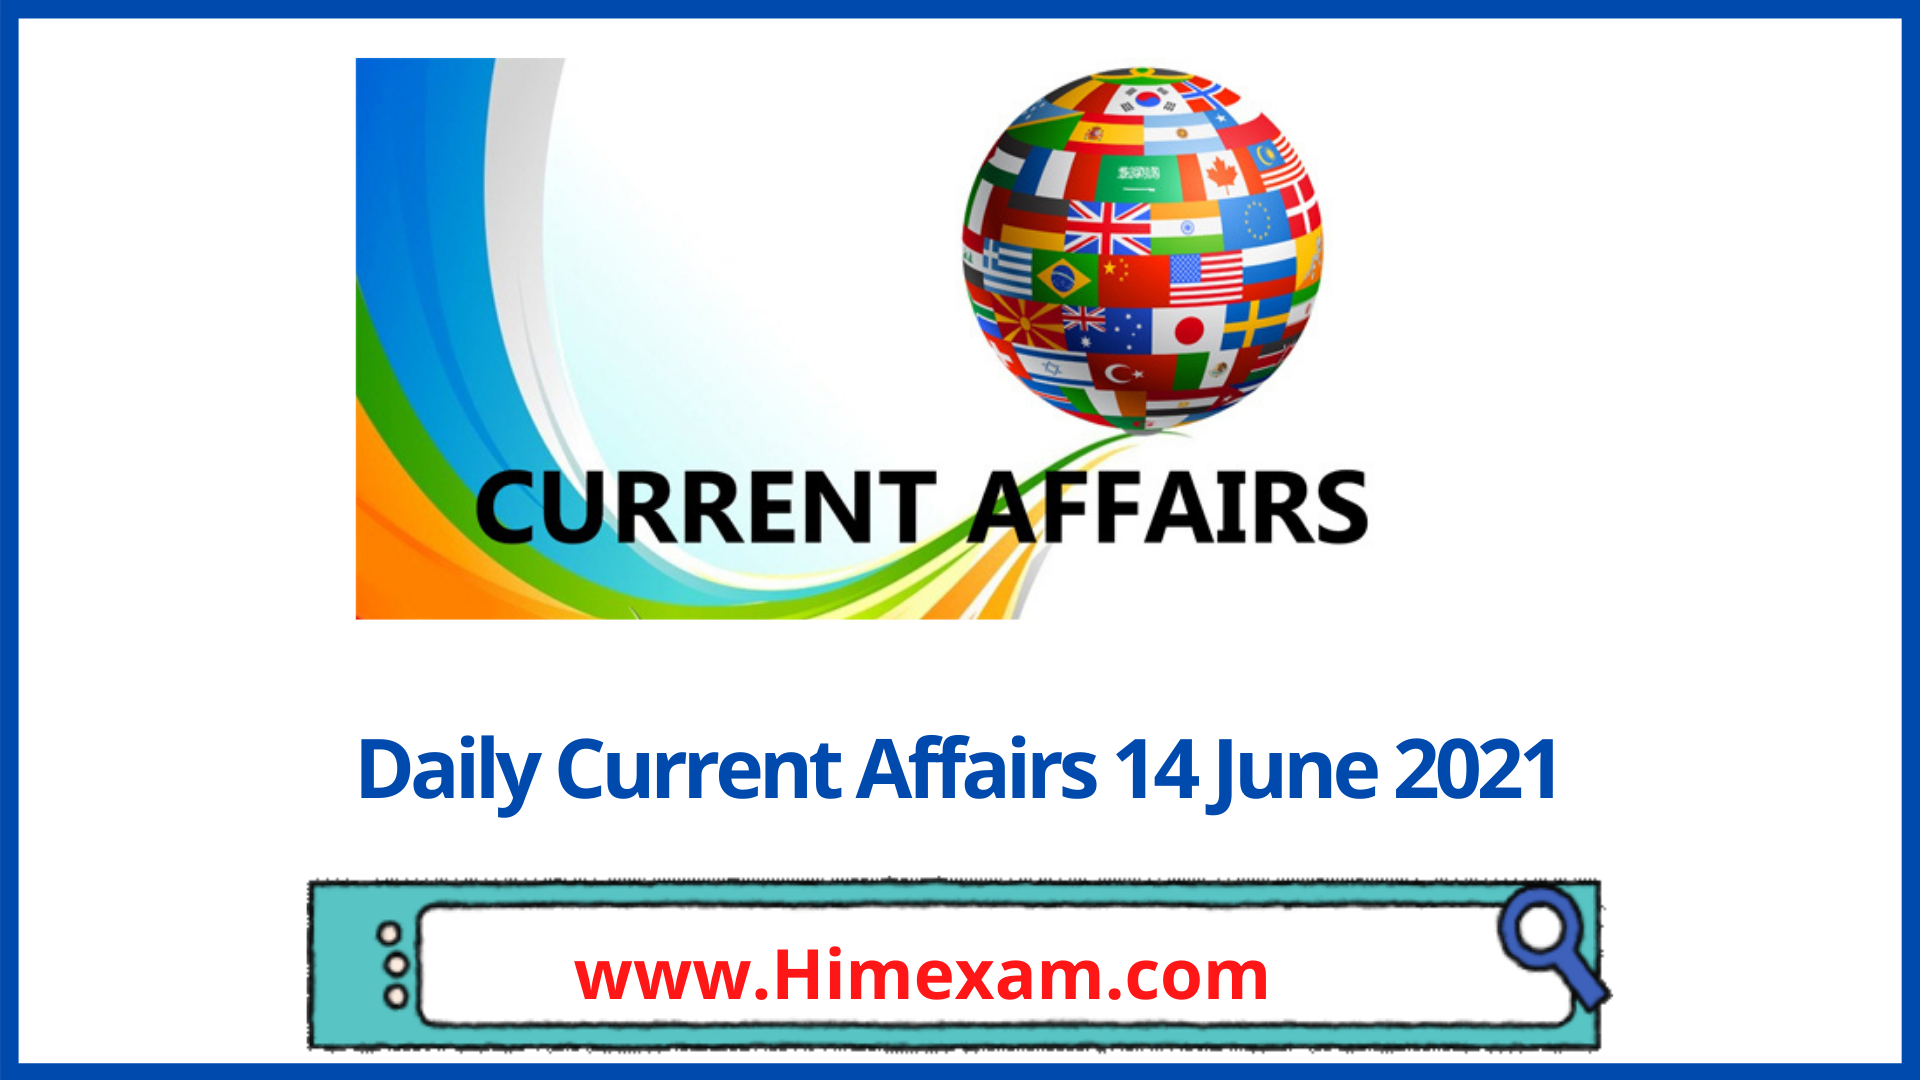 Daily Current Affairs 14 June 2021 In Hindi